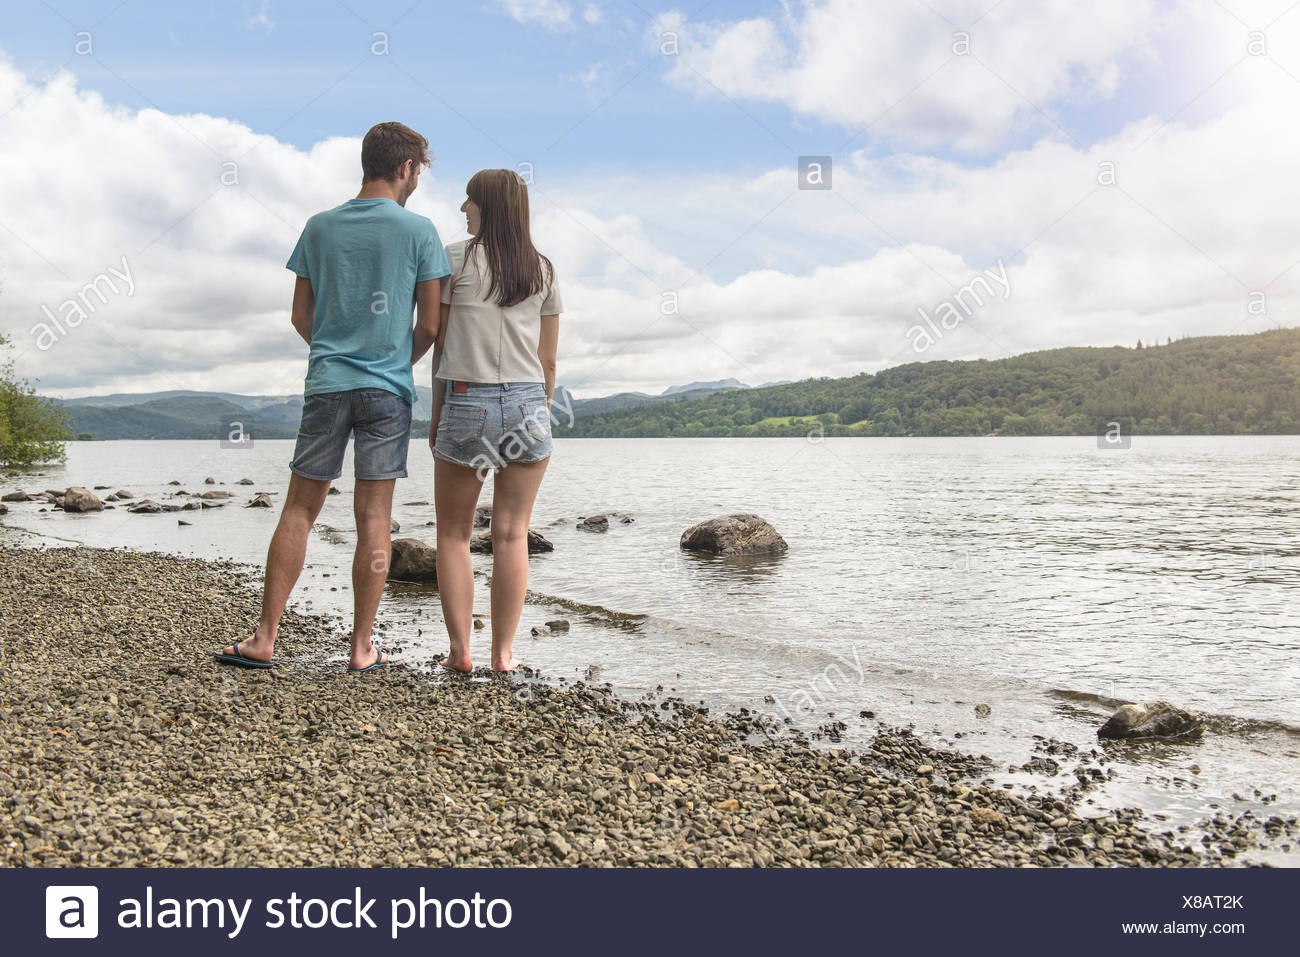 Young couple looking to each other at the edge of lake under sunny sky - Stock Image